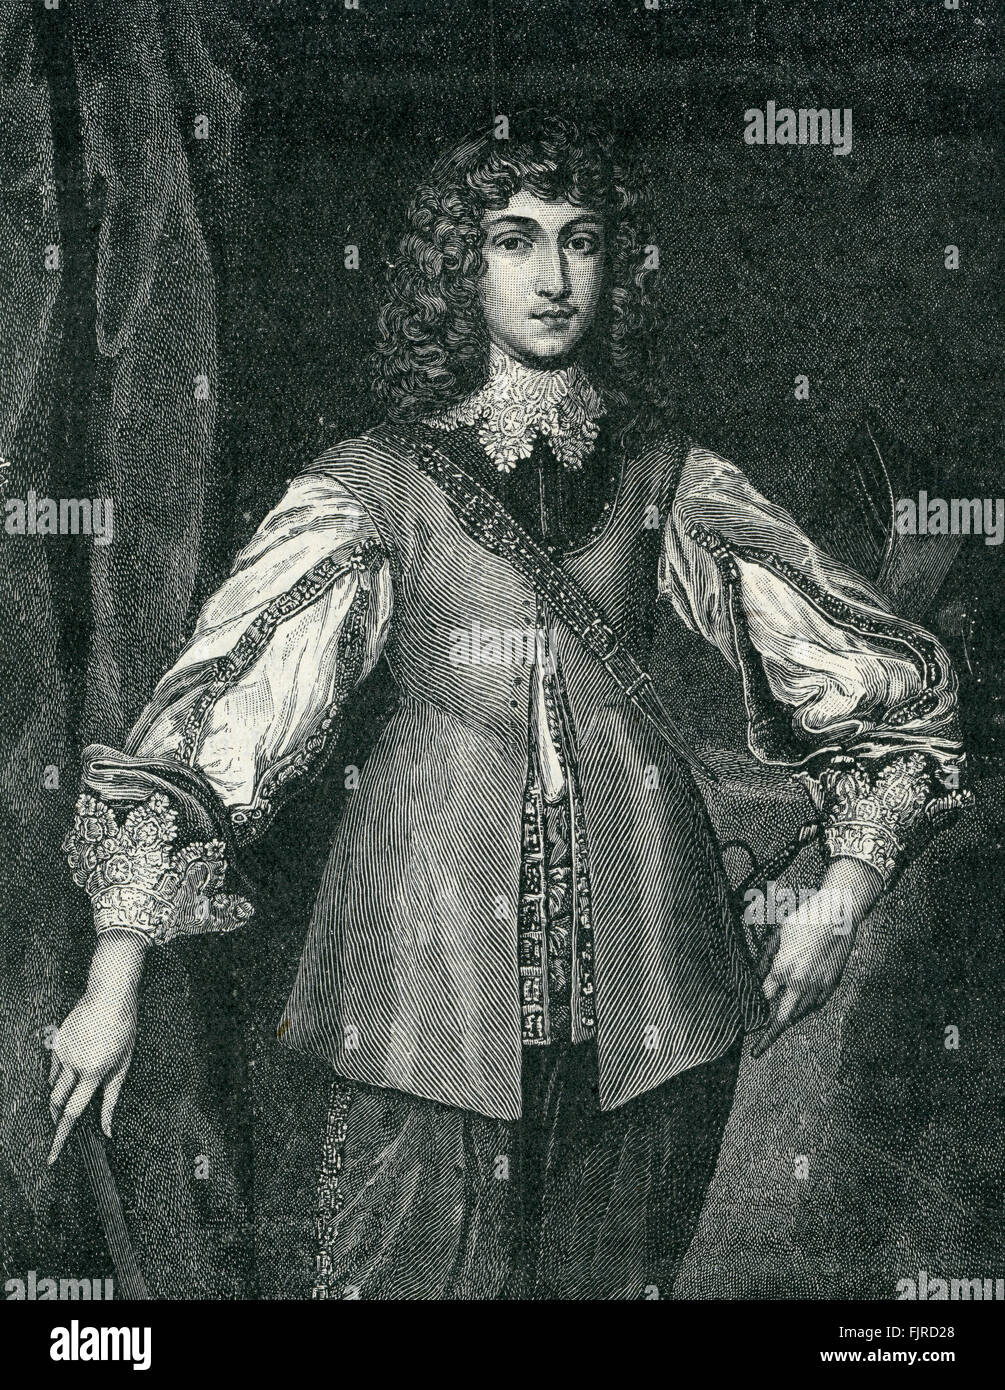 Prince Rupert (1619 – 1682), commander of the Royalist cavalry during the English Civil War, until 1648 (1642–1651). - Stock Image